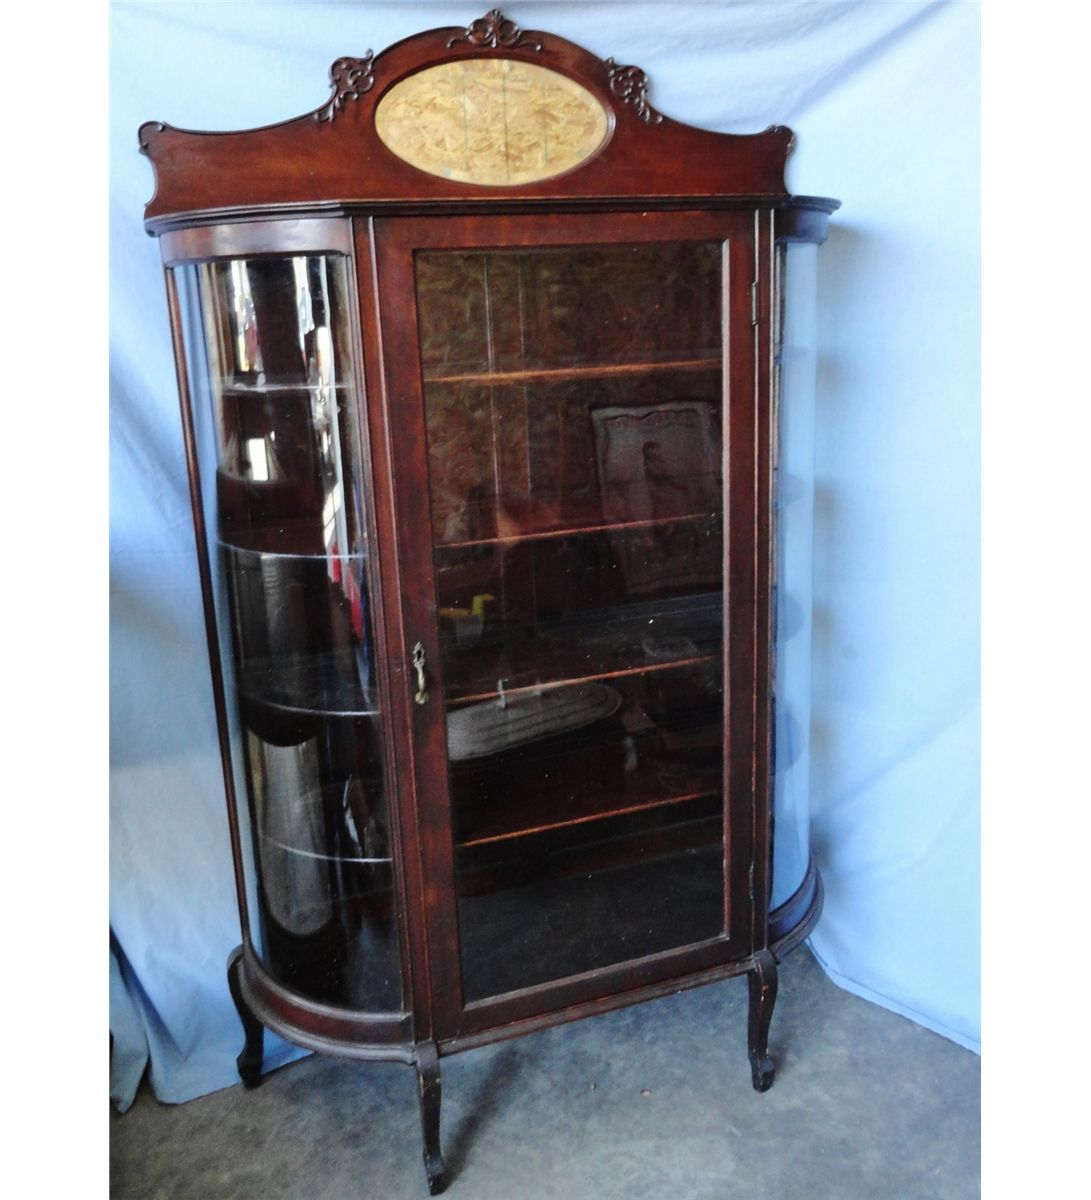 Merveilleux Mahogany Curved Glass China Cabinet, Beveled Oval Mirror. Loading Zoom